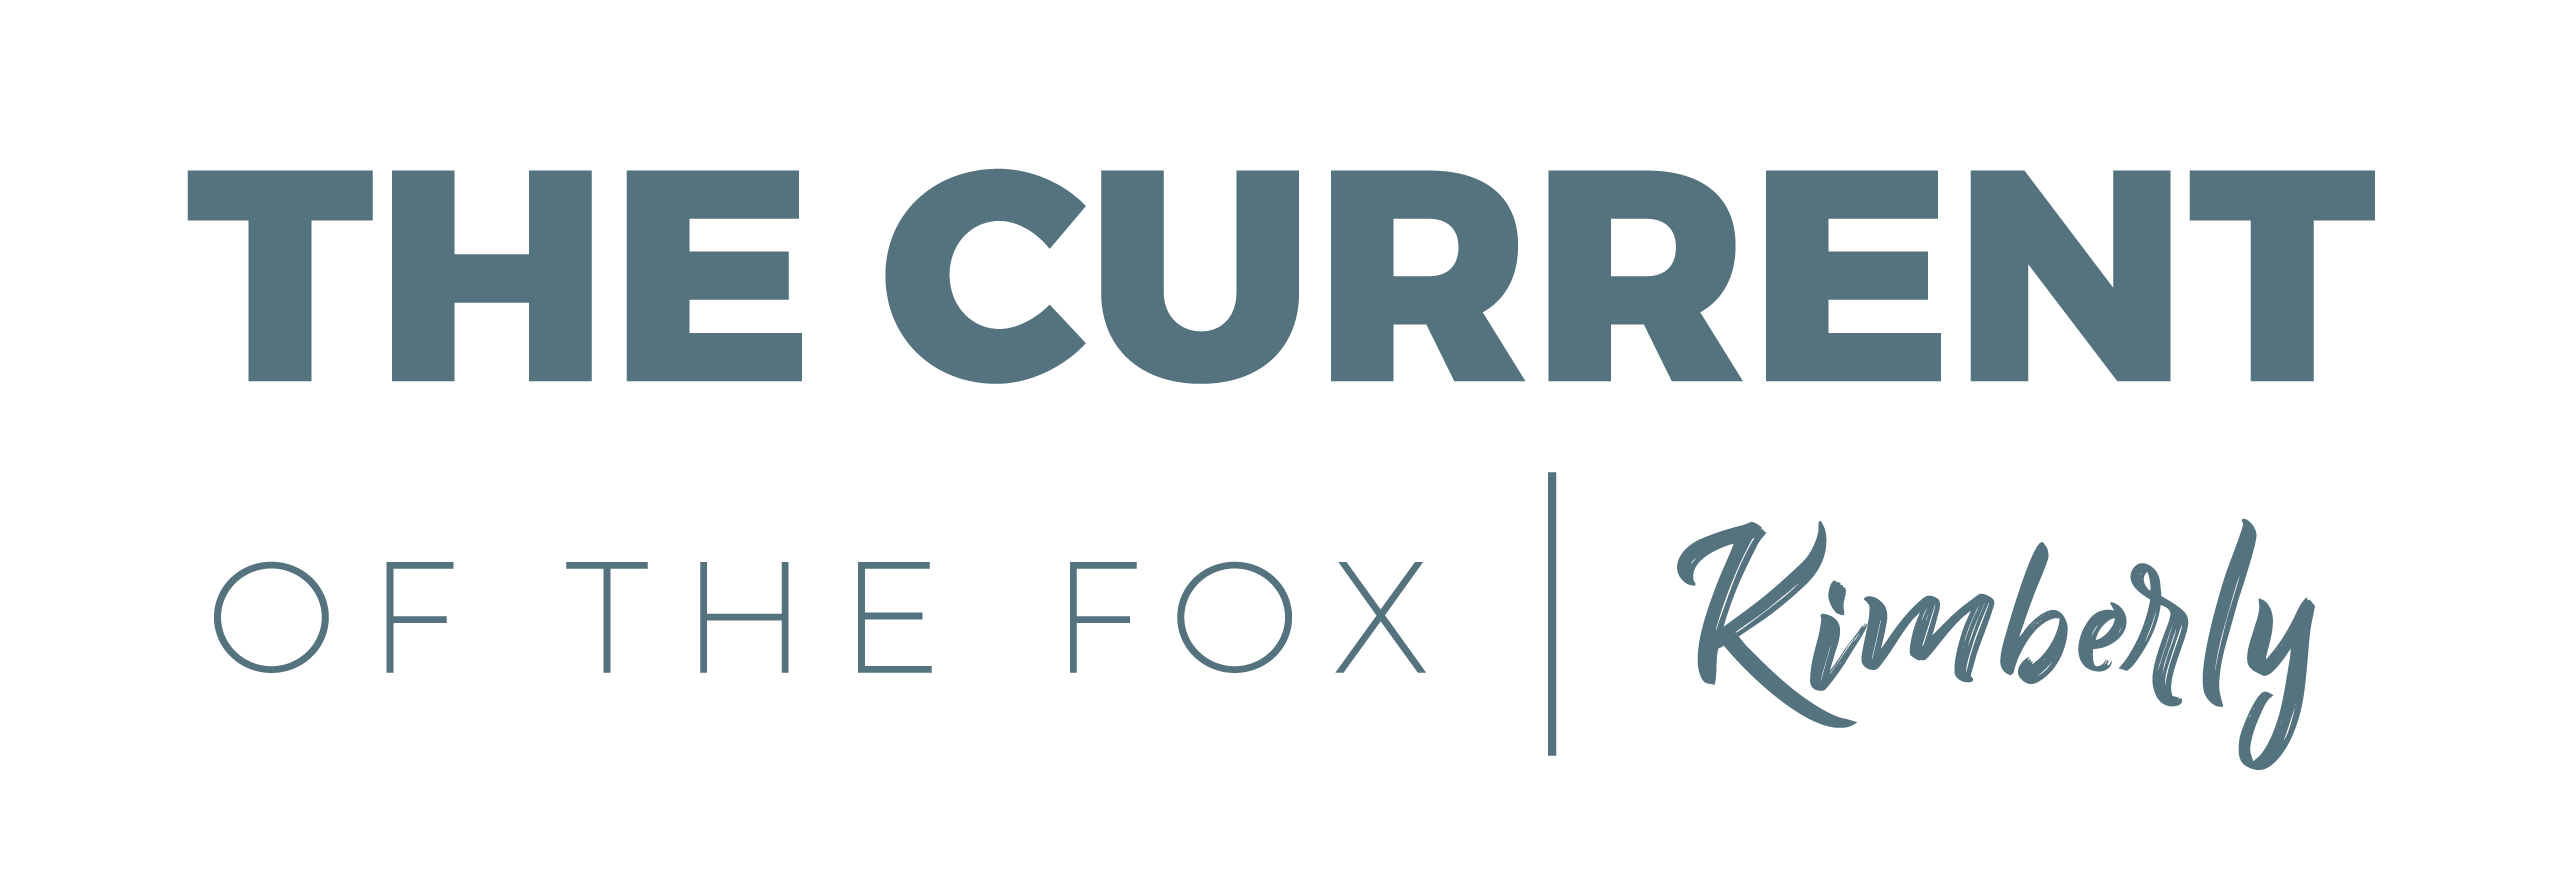 The Current of the Fox - Kimberly